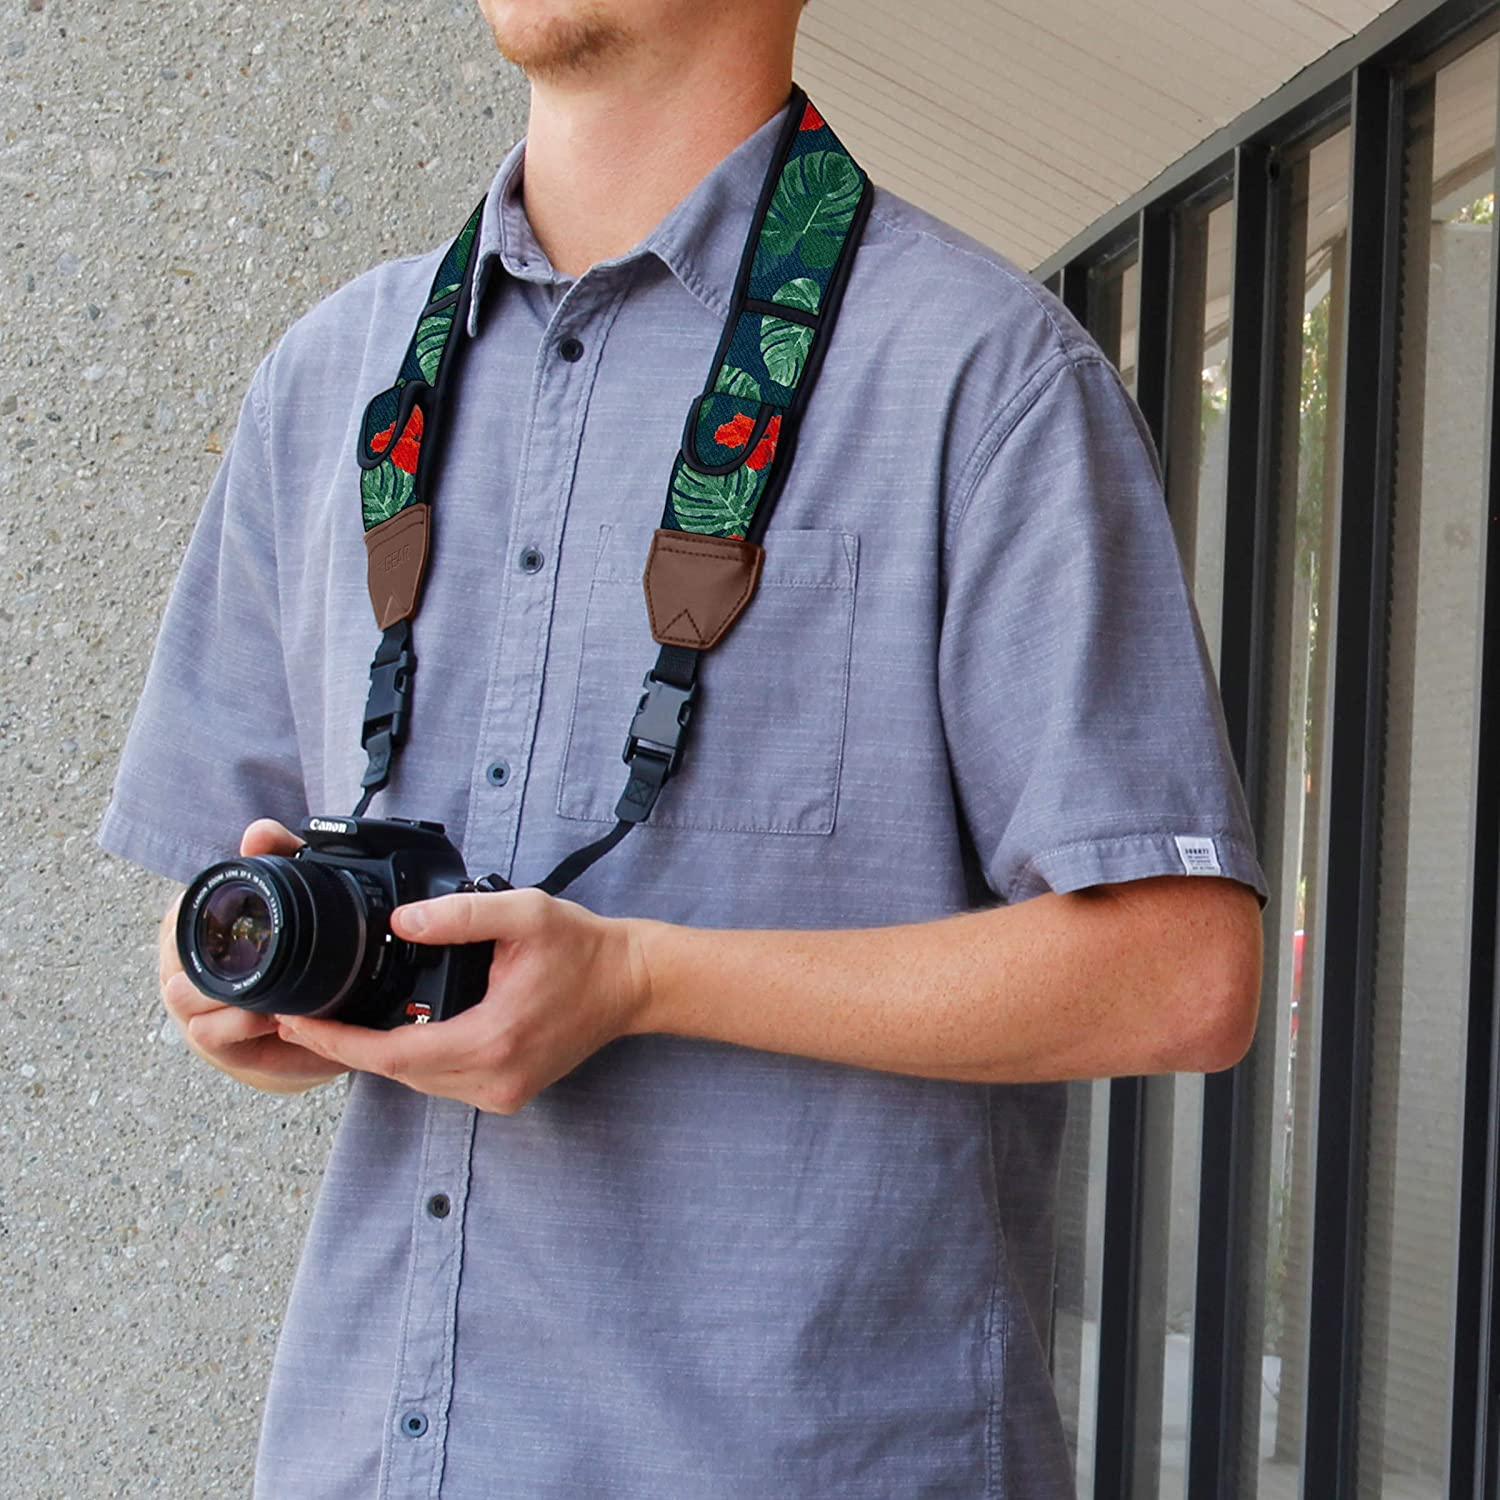 Mirrorless Sony and More DSLR Nikon USA GEAR TrueSHOT Camera Strap with Galaxy Neoprene Pattern Fujifilm Compatible With Canon Cameras Accessory Pockets and Quick Release Buckles